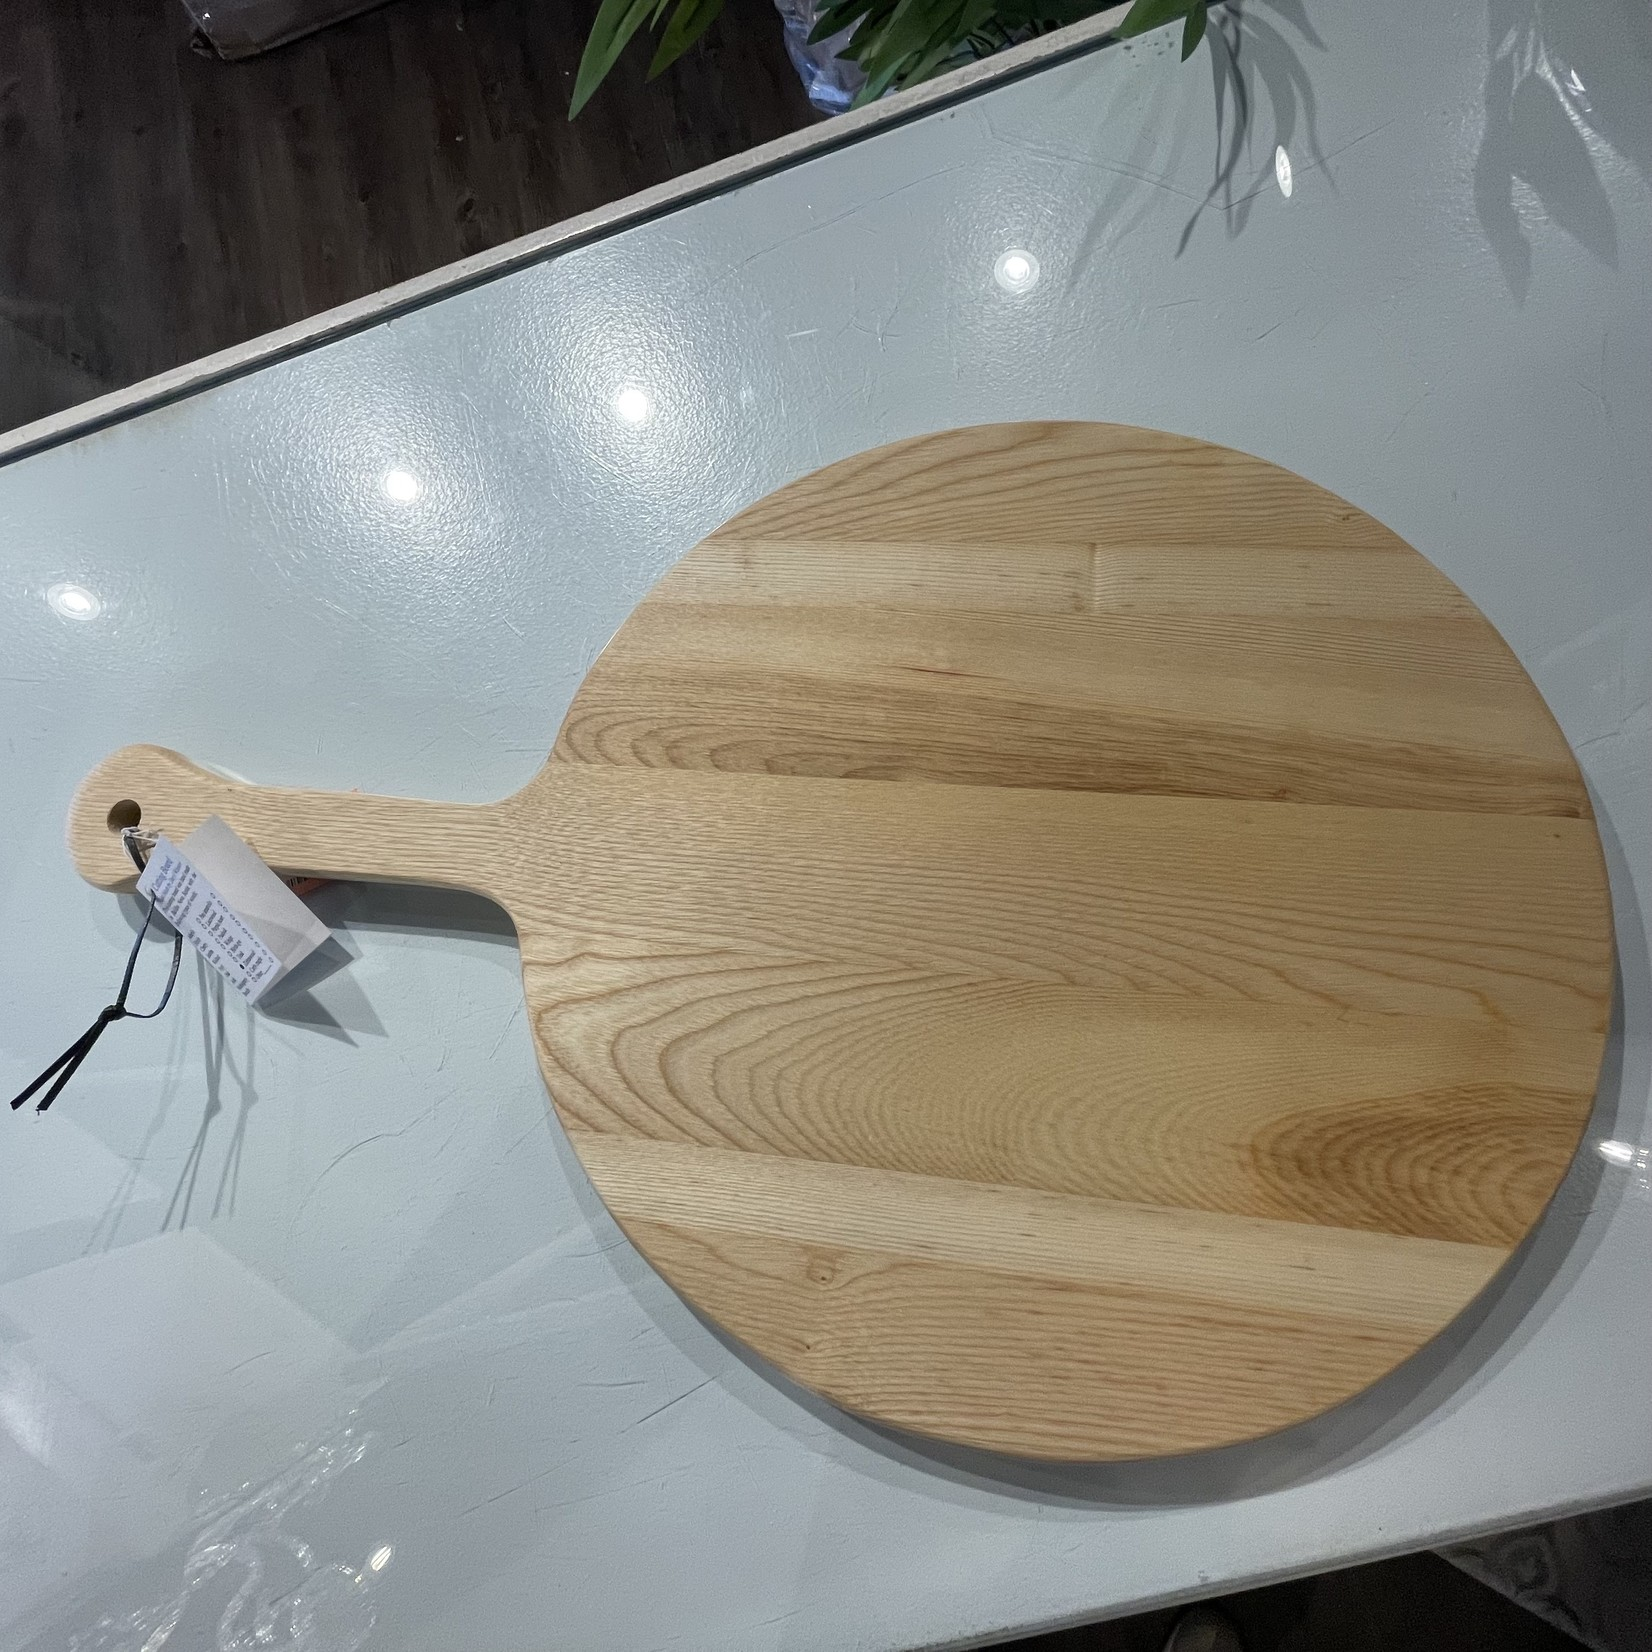 Consign Breakers Woodworking - Handmade Large Pizza Board